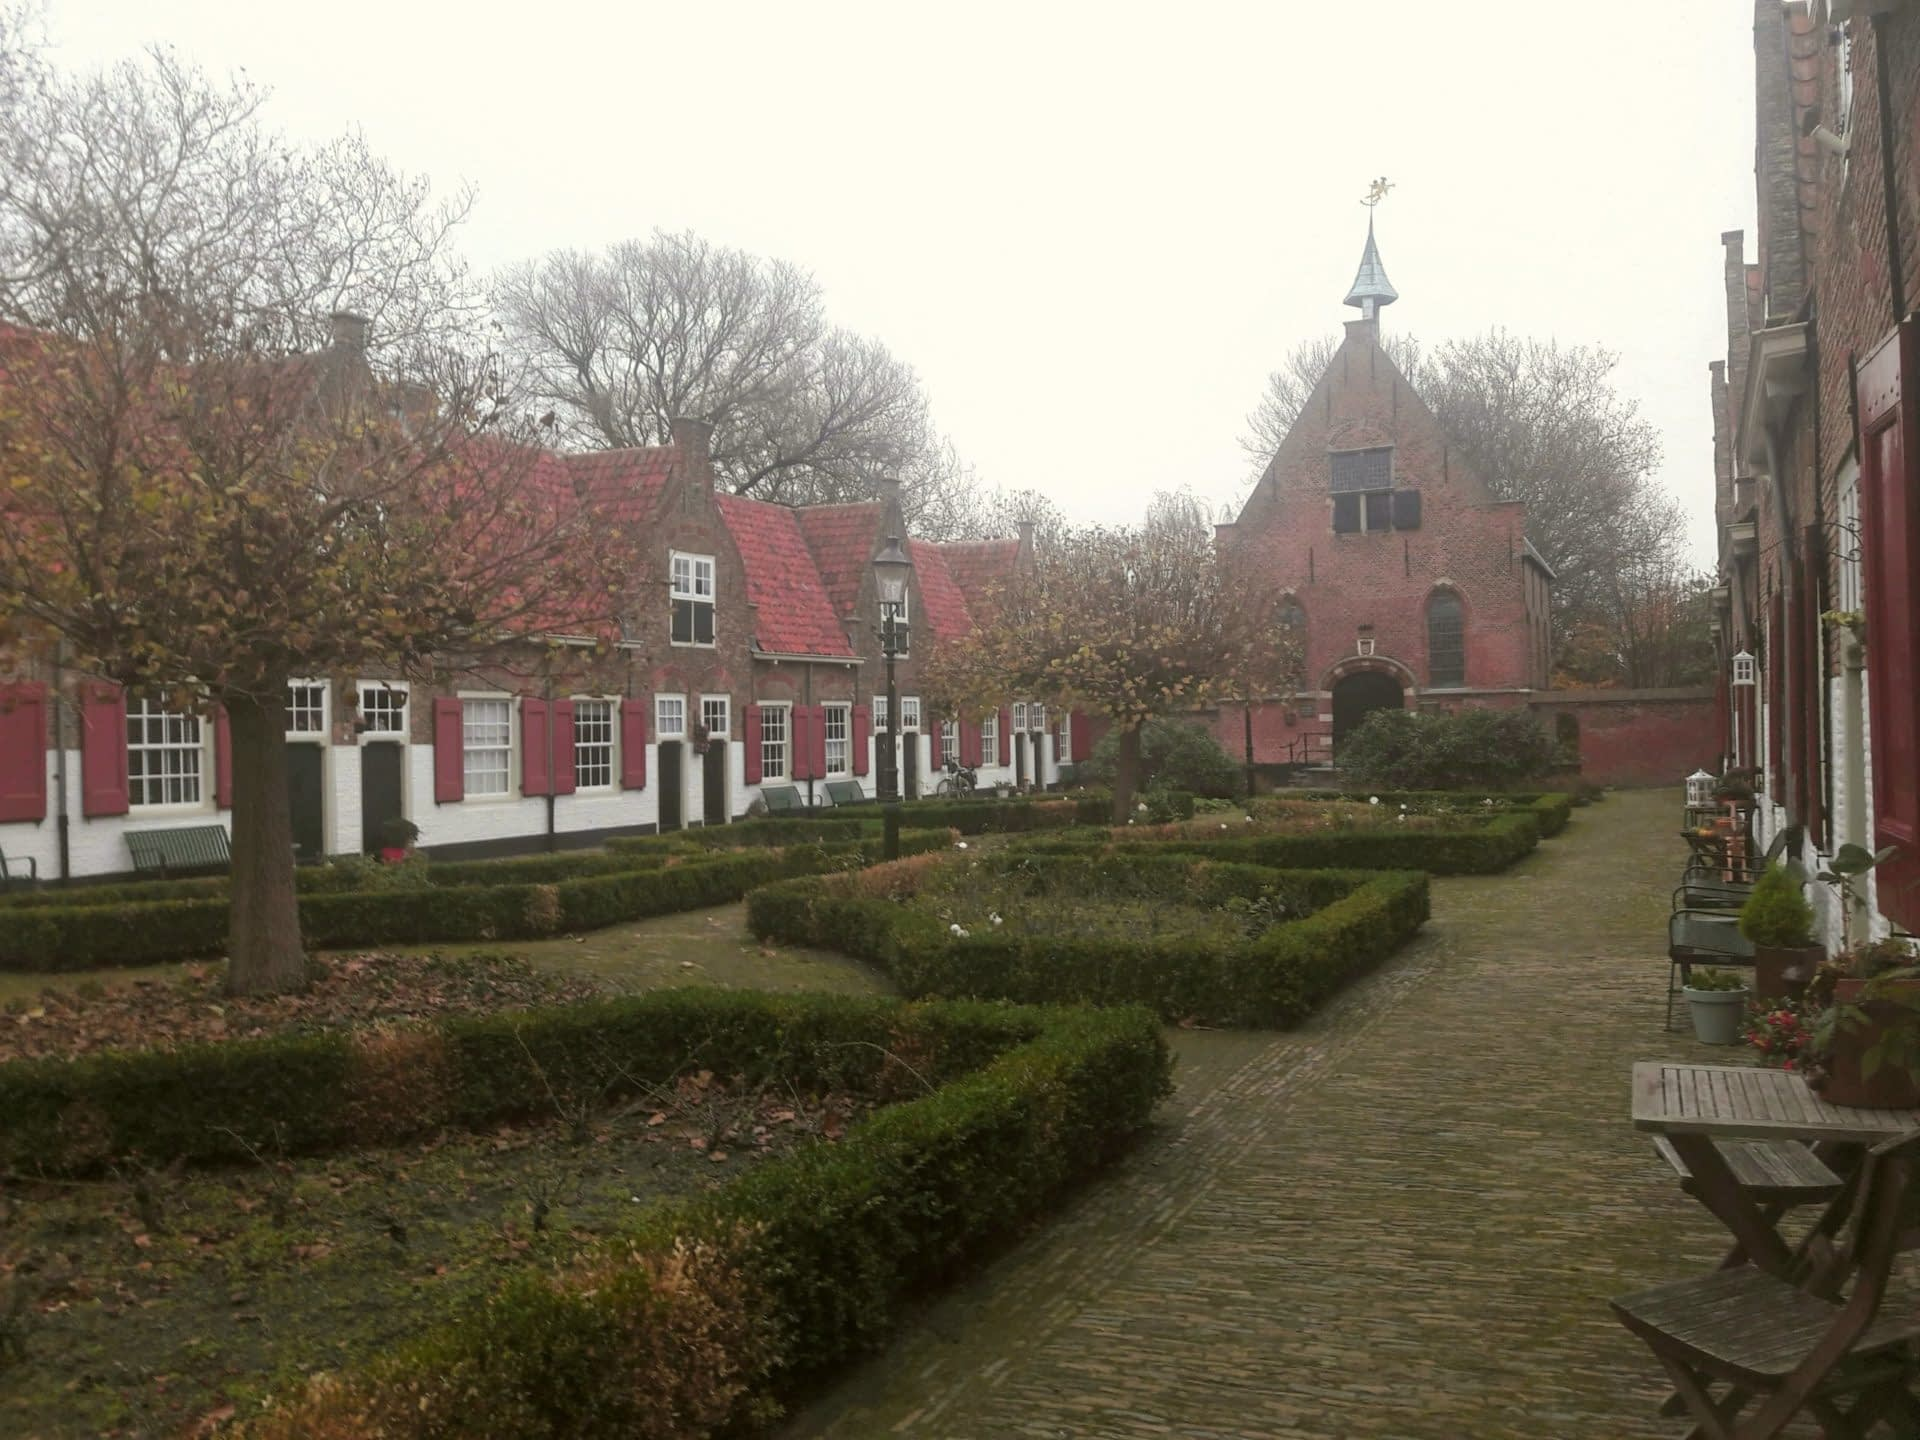 Verita's Visit quaint town near The Hague tour & event Netherlands